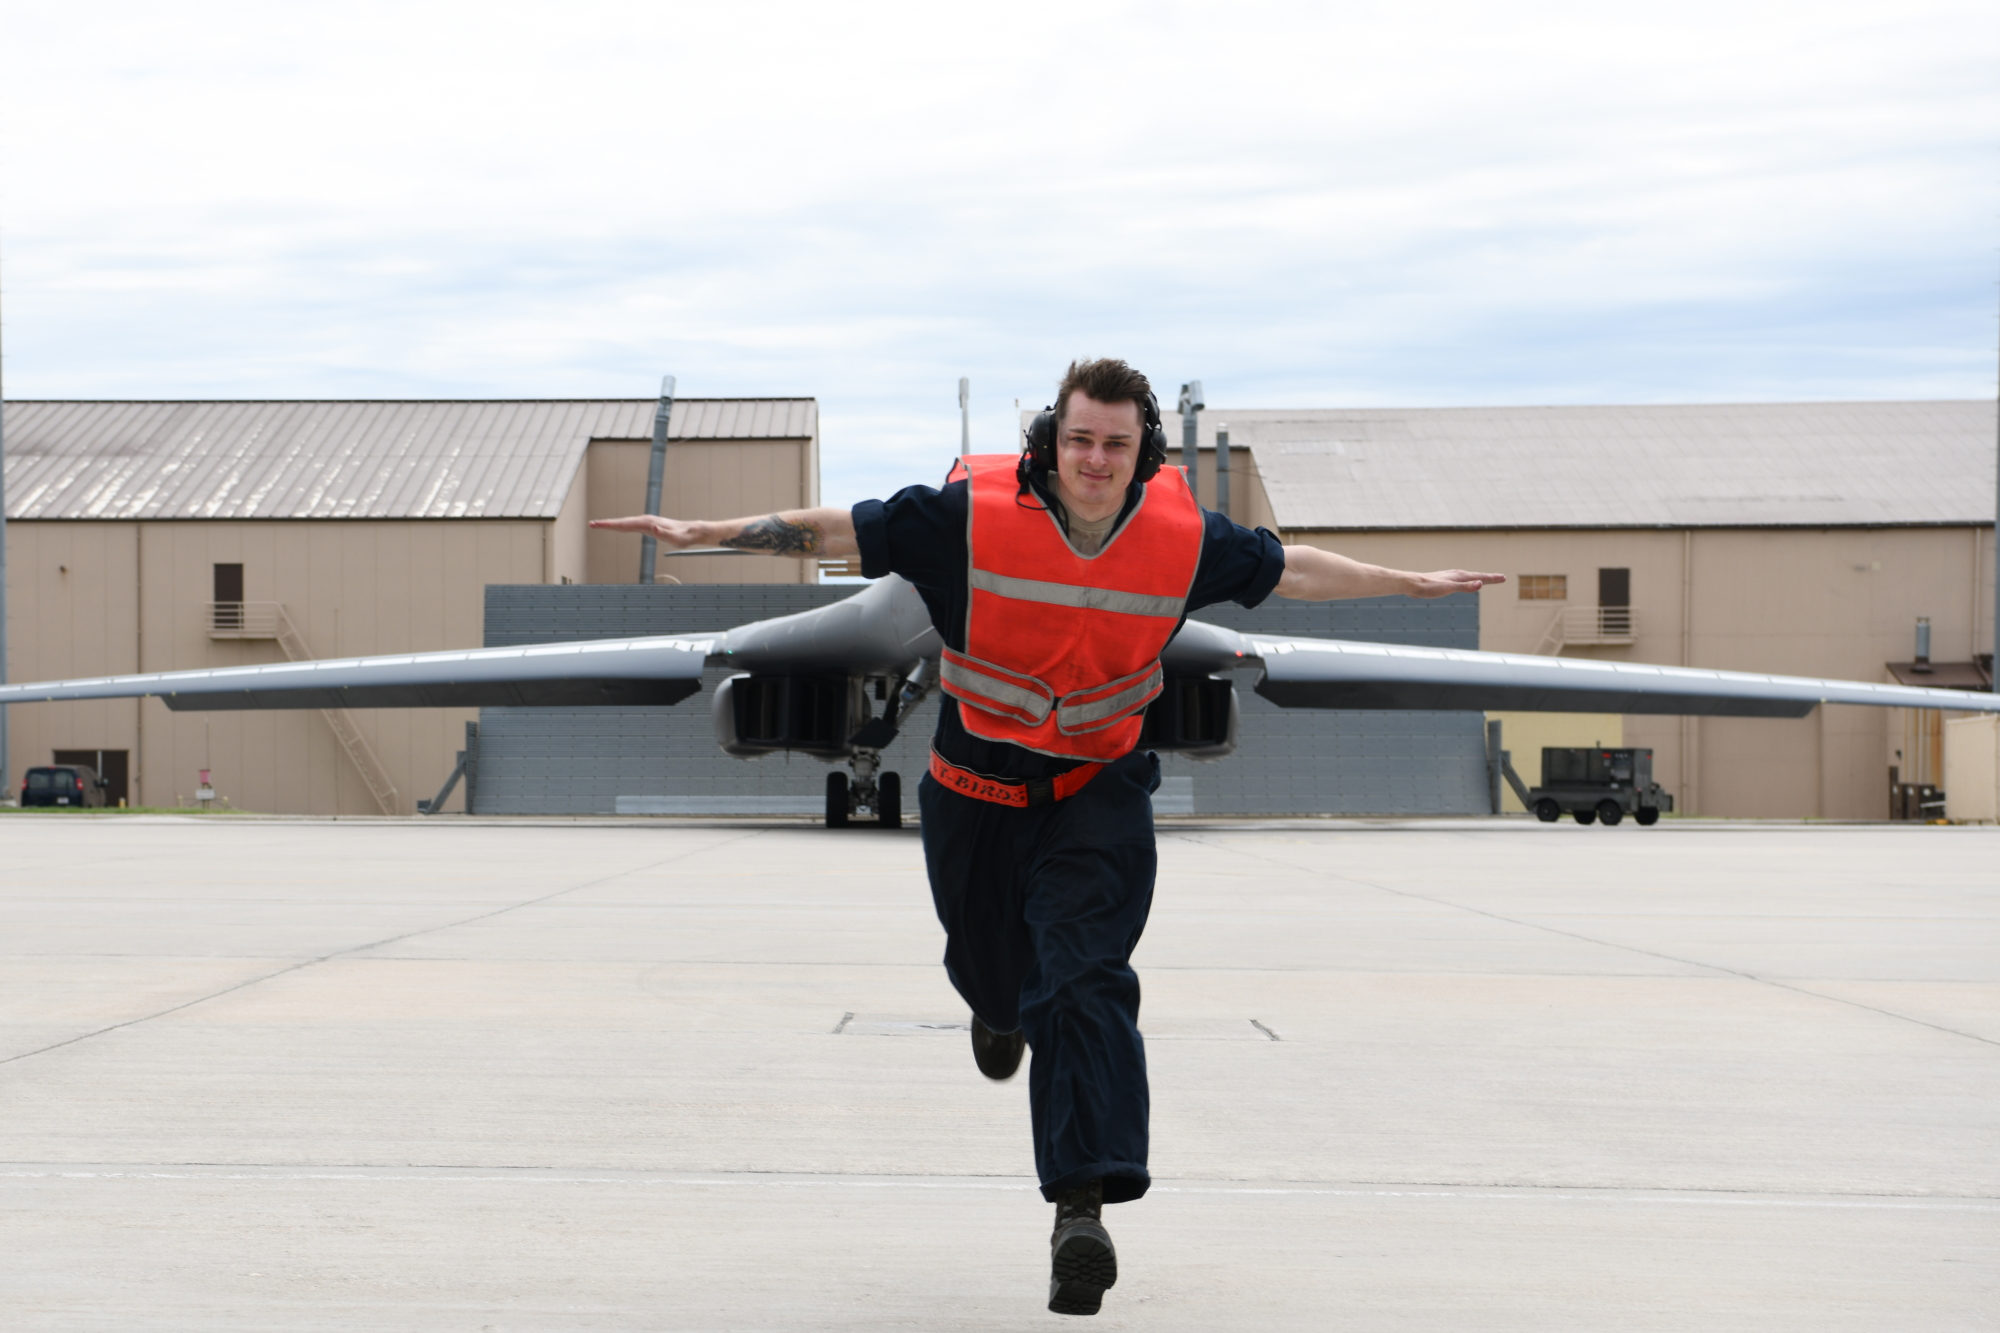 A crew chief from the 28th Aircraft Maintenance Squadron, Ellsworth Air Force Base, S.D., prepares to taxi a B-1B Lancer before an approximately 29-hour long-range, long-duration, strategic bomber mission to the U.S. European Command area of responsibility, May 28, 2020. (Senior Airman Nicolas Z. Erwin/Air Force)